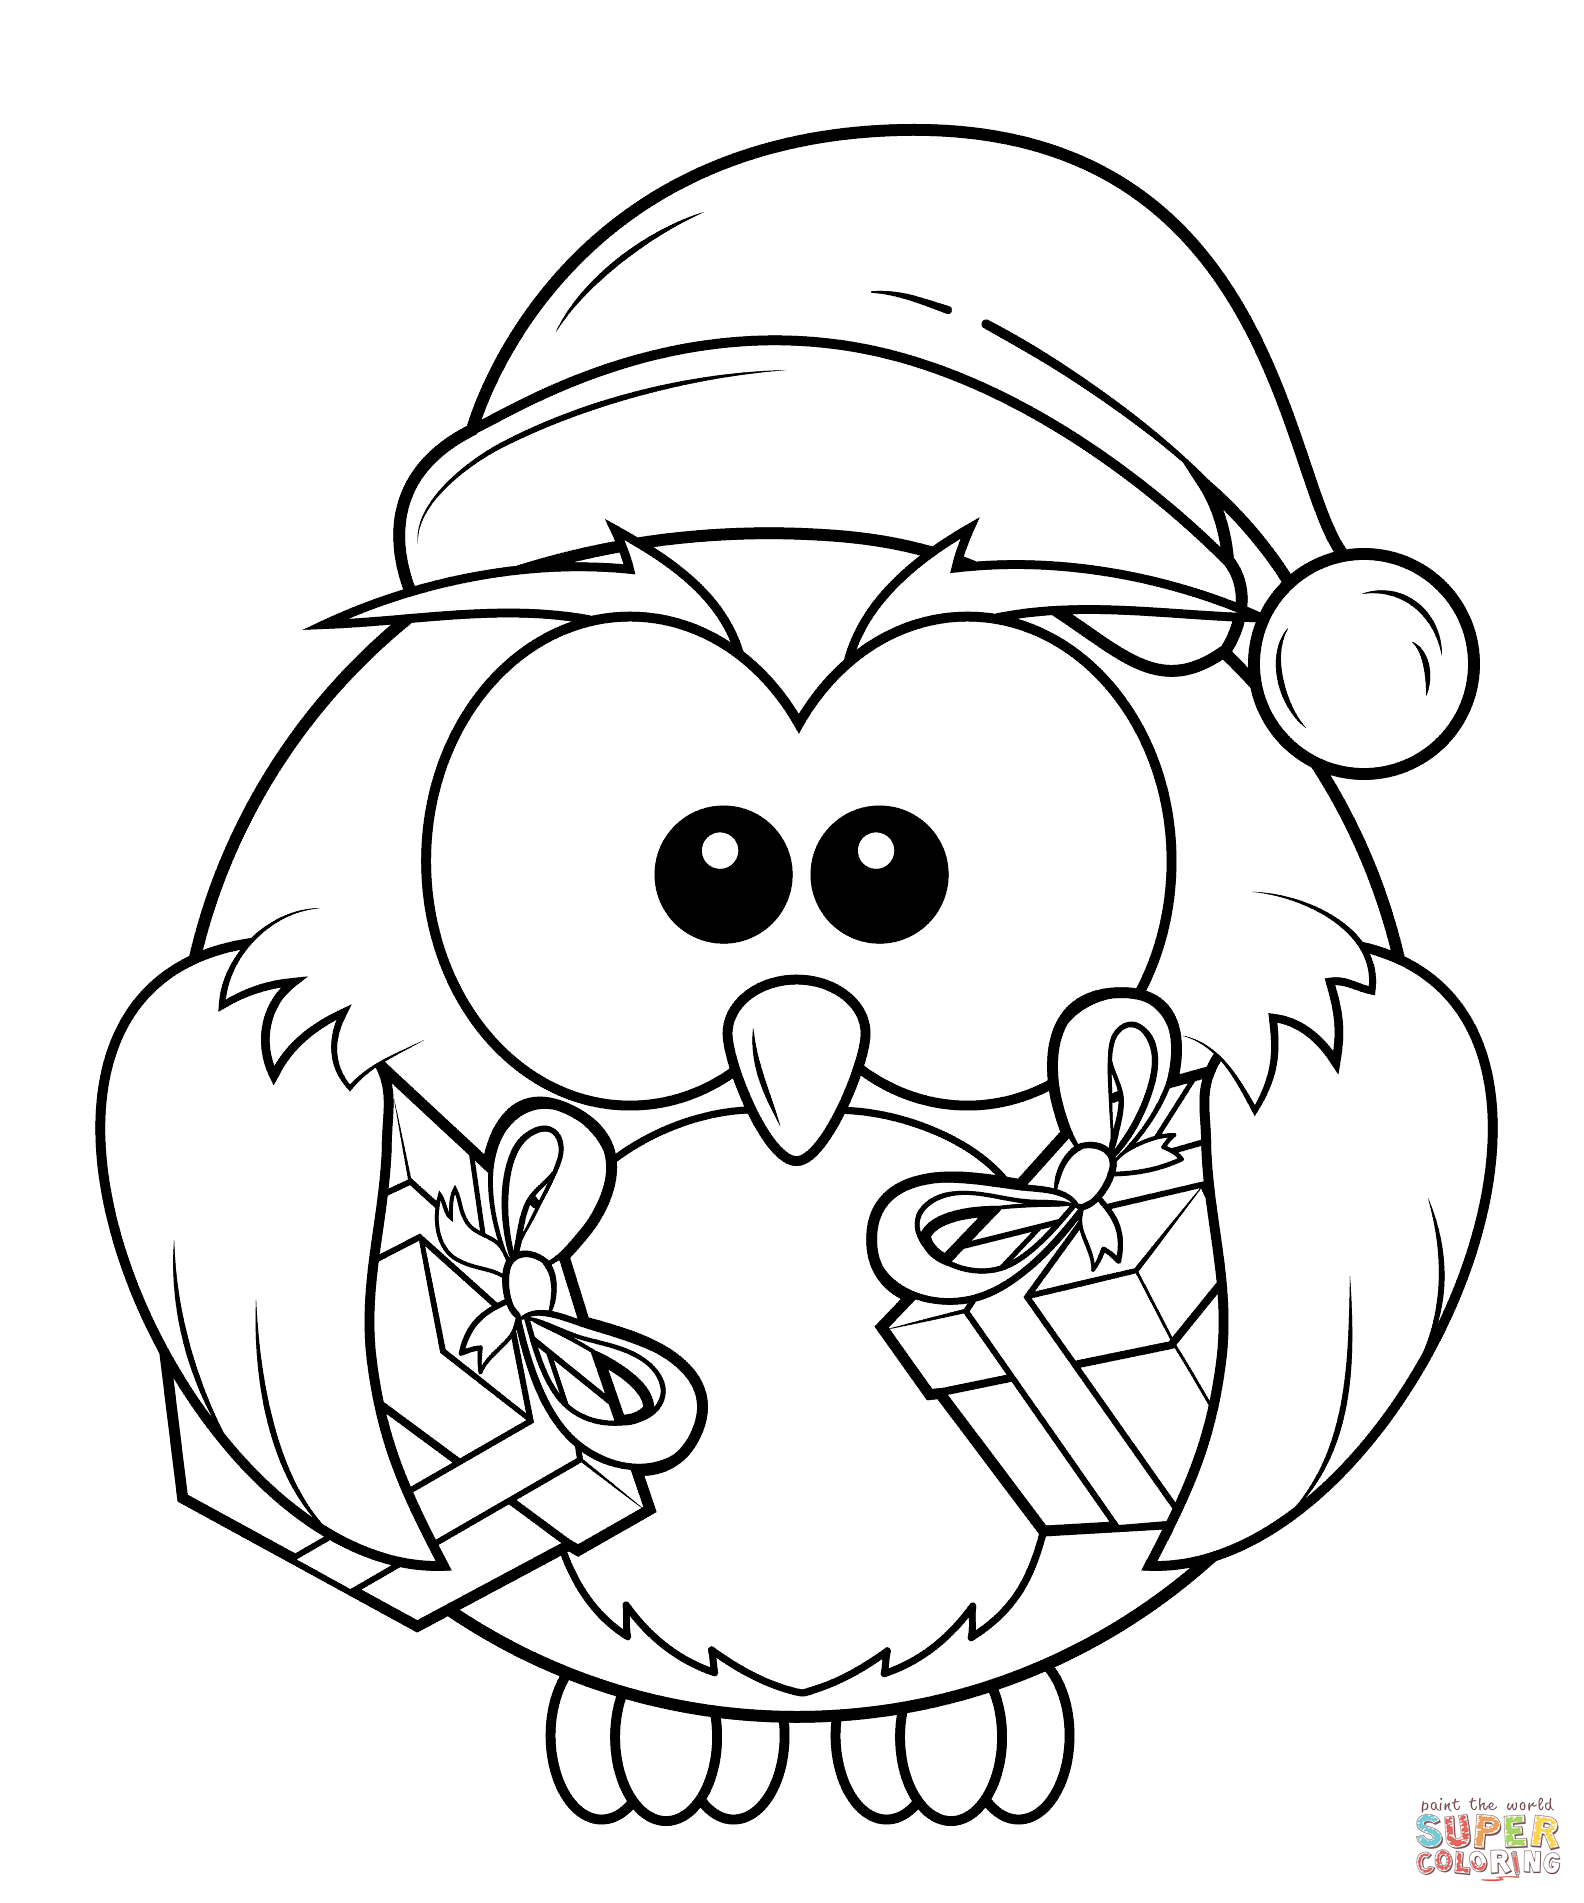 owl coloring pages pinterest - christmas owl with gift boxes coloring 1584 1903